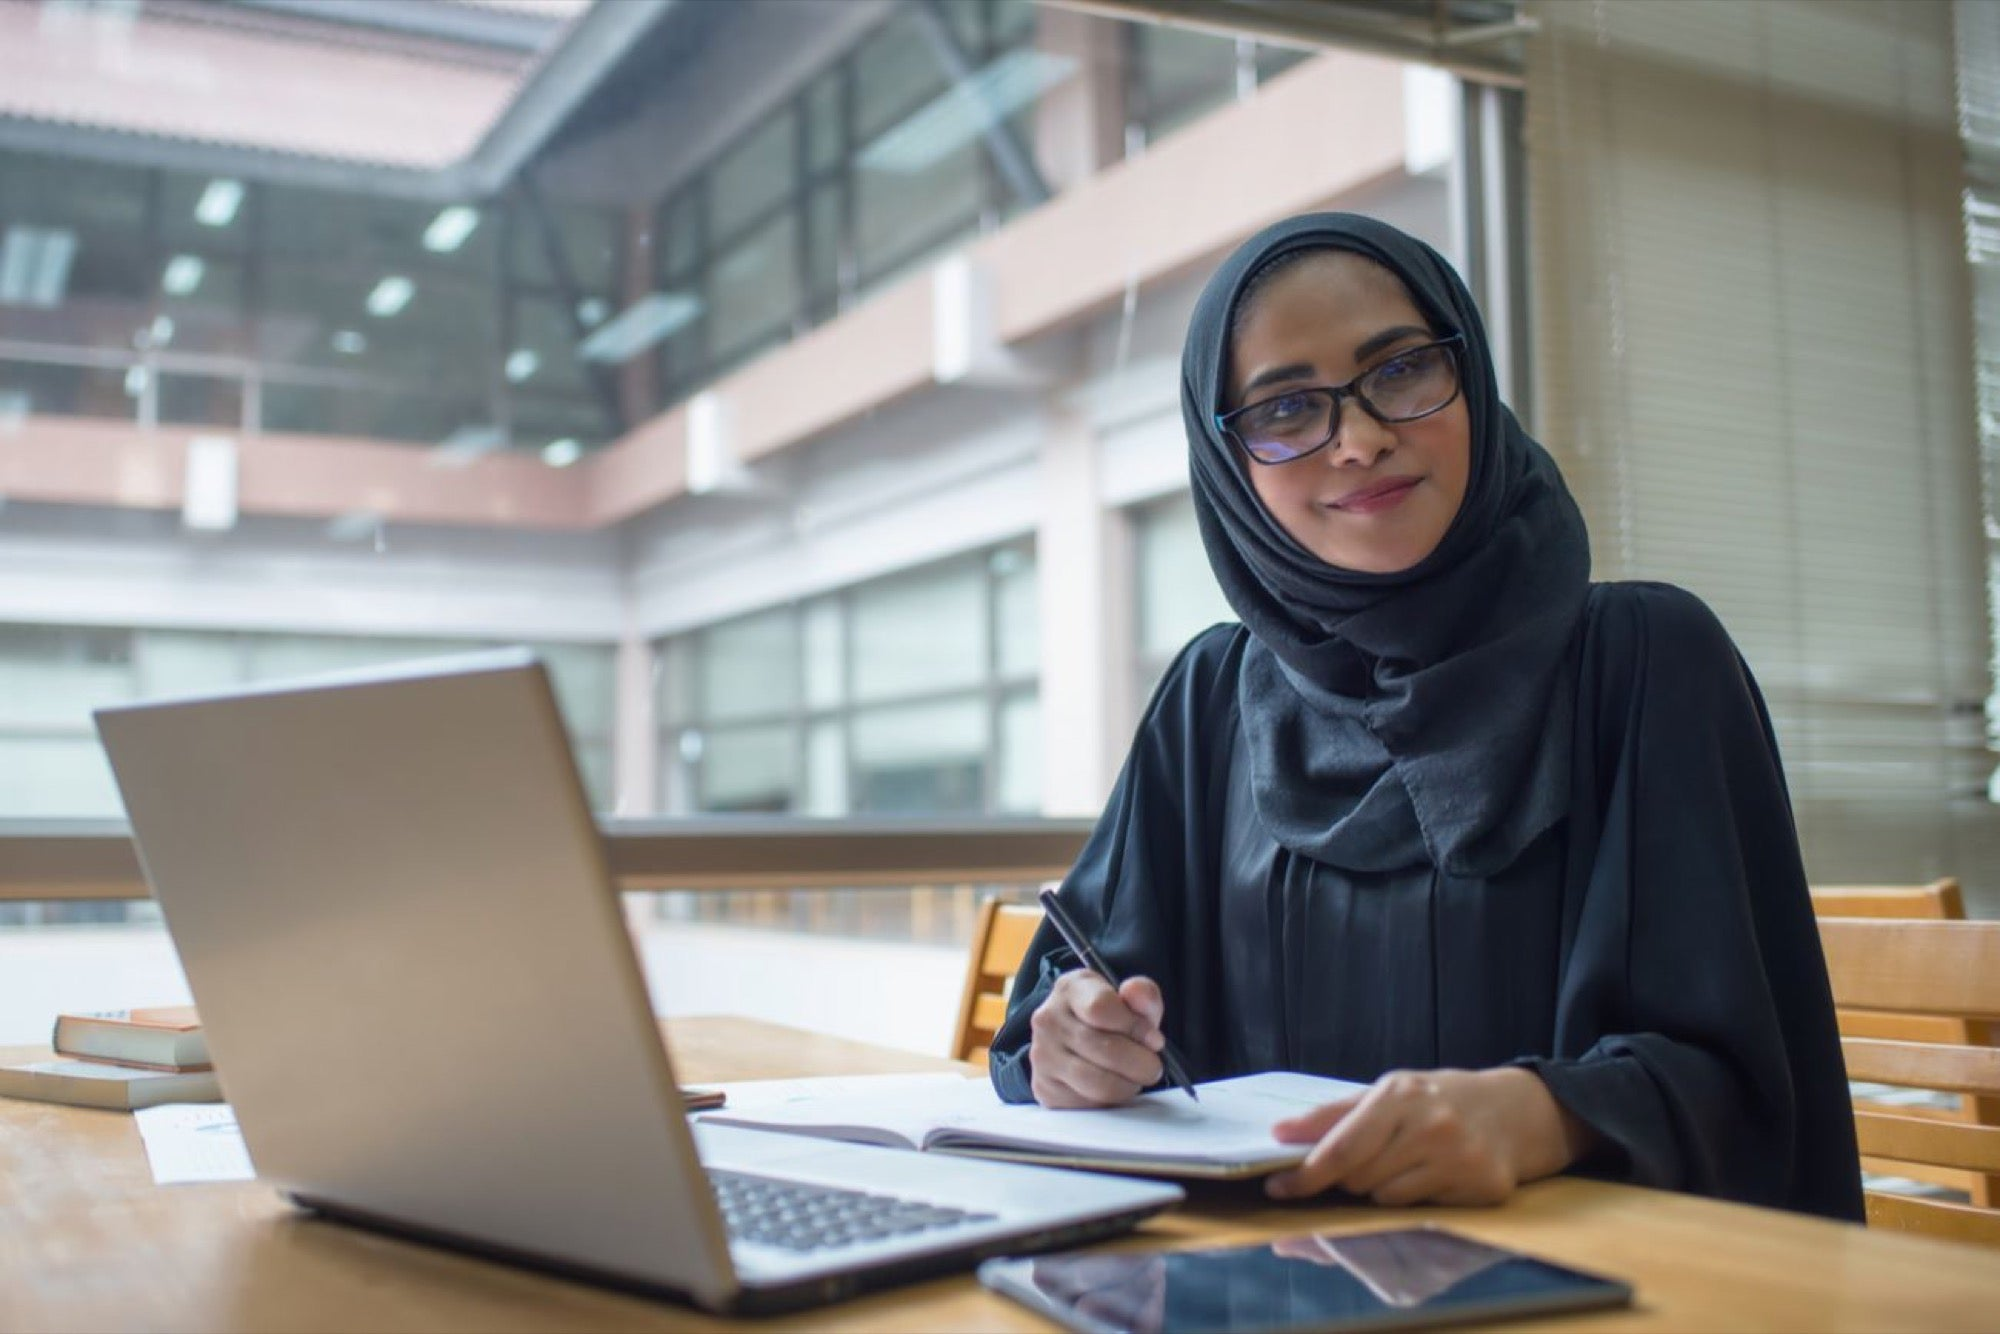 UAE IS AN OPEN PLACE FOR WOMEN ENTREPRENEURS